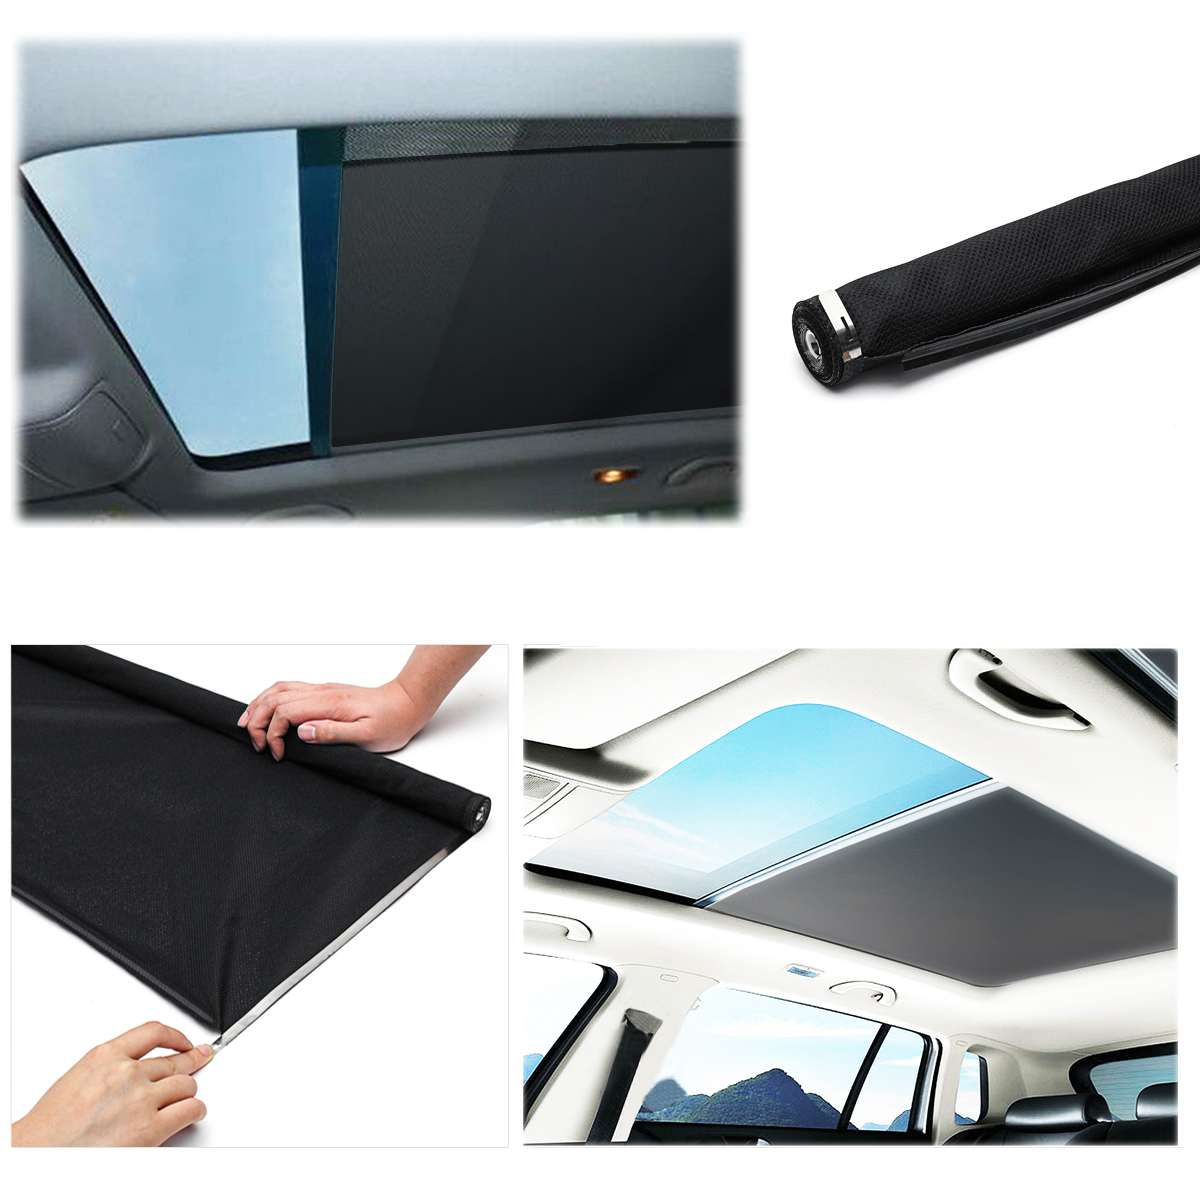 Black Skylight shutter Sunroof sunshade curtain For Audi Q5 for VW Sharan style TiguanBlack Skylight shutter Sunroof sunshade curtain For Audi Q5 for VW Sharan style Tiguan